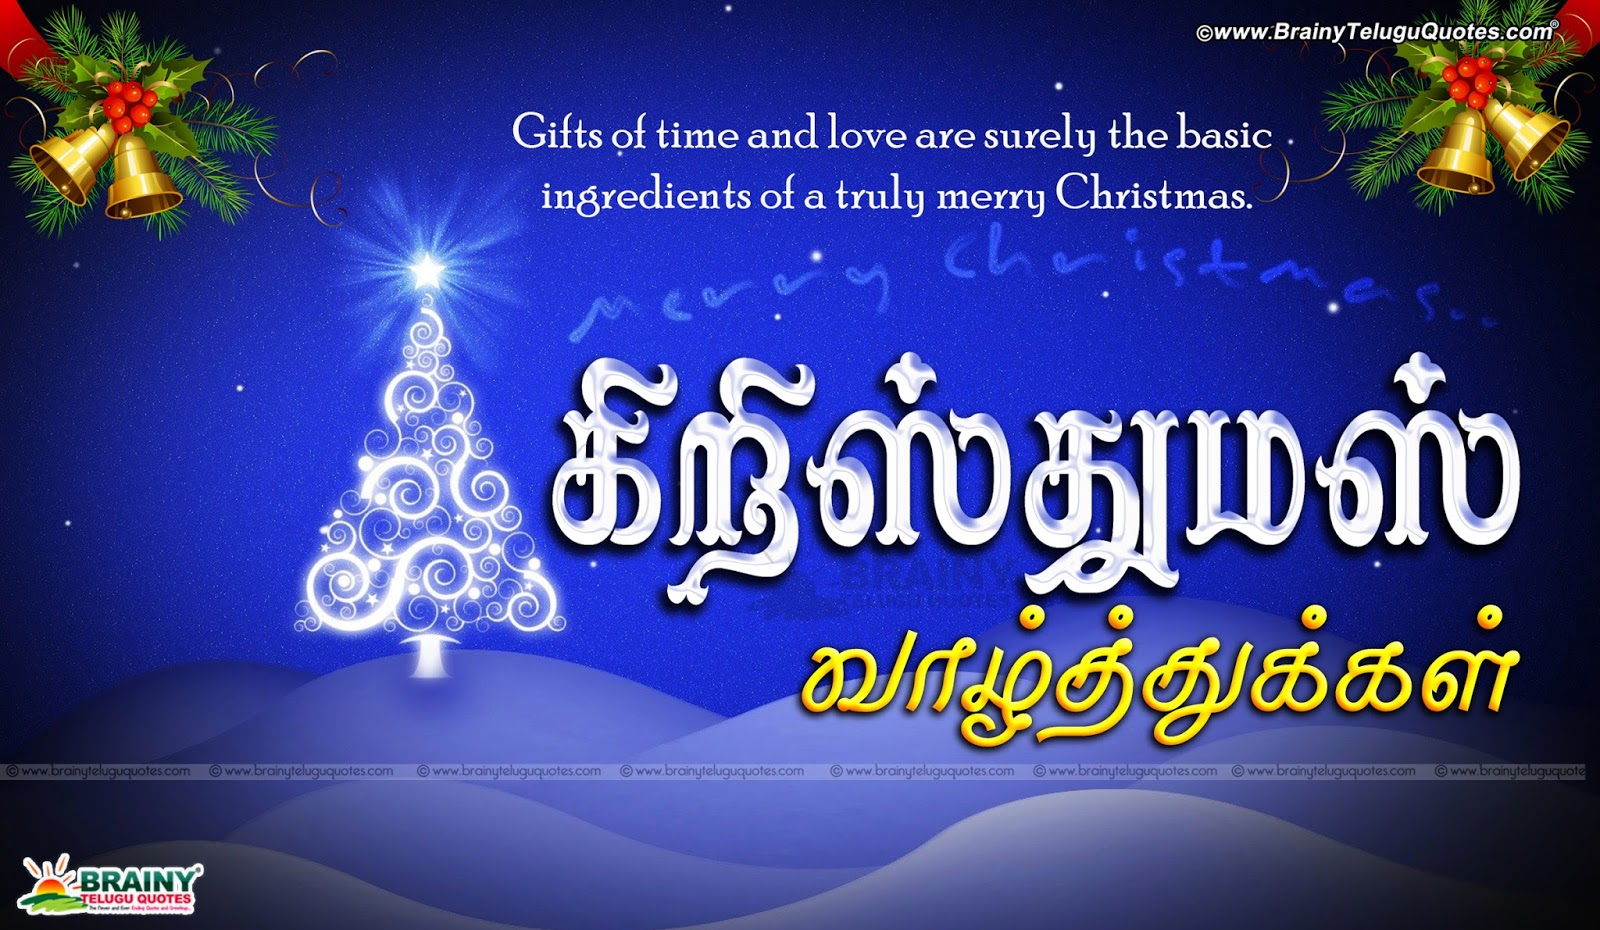 Latest 2016 Christmas Quotes Greetings In Tamil Brainyteluguquotes